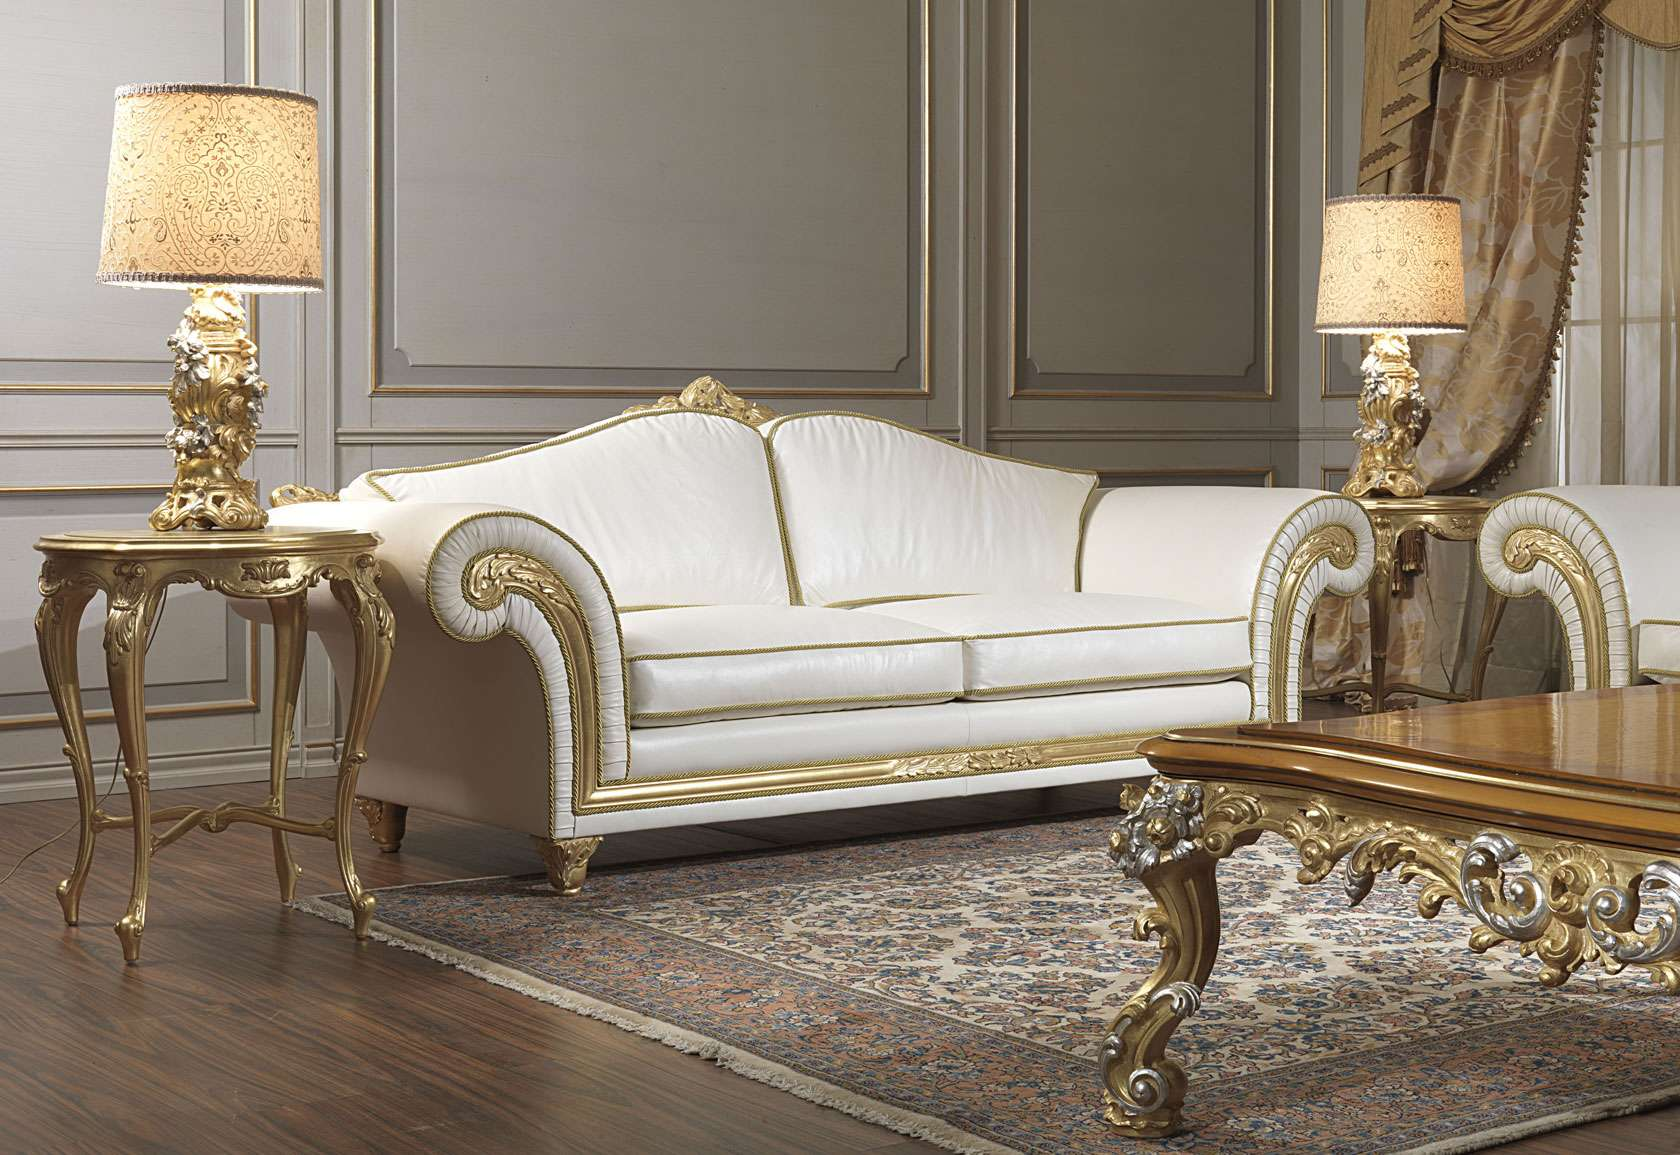 Classic sofa imperial in white leather vimercati classic for Canape poltrone et sofa